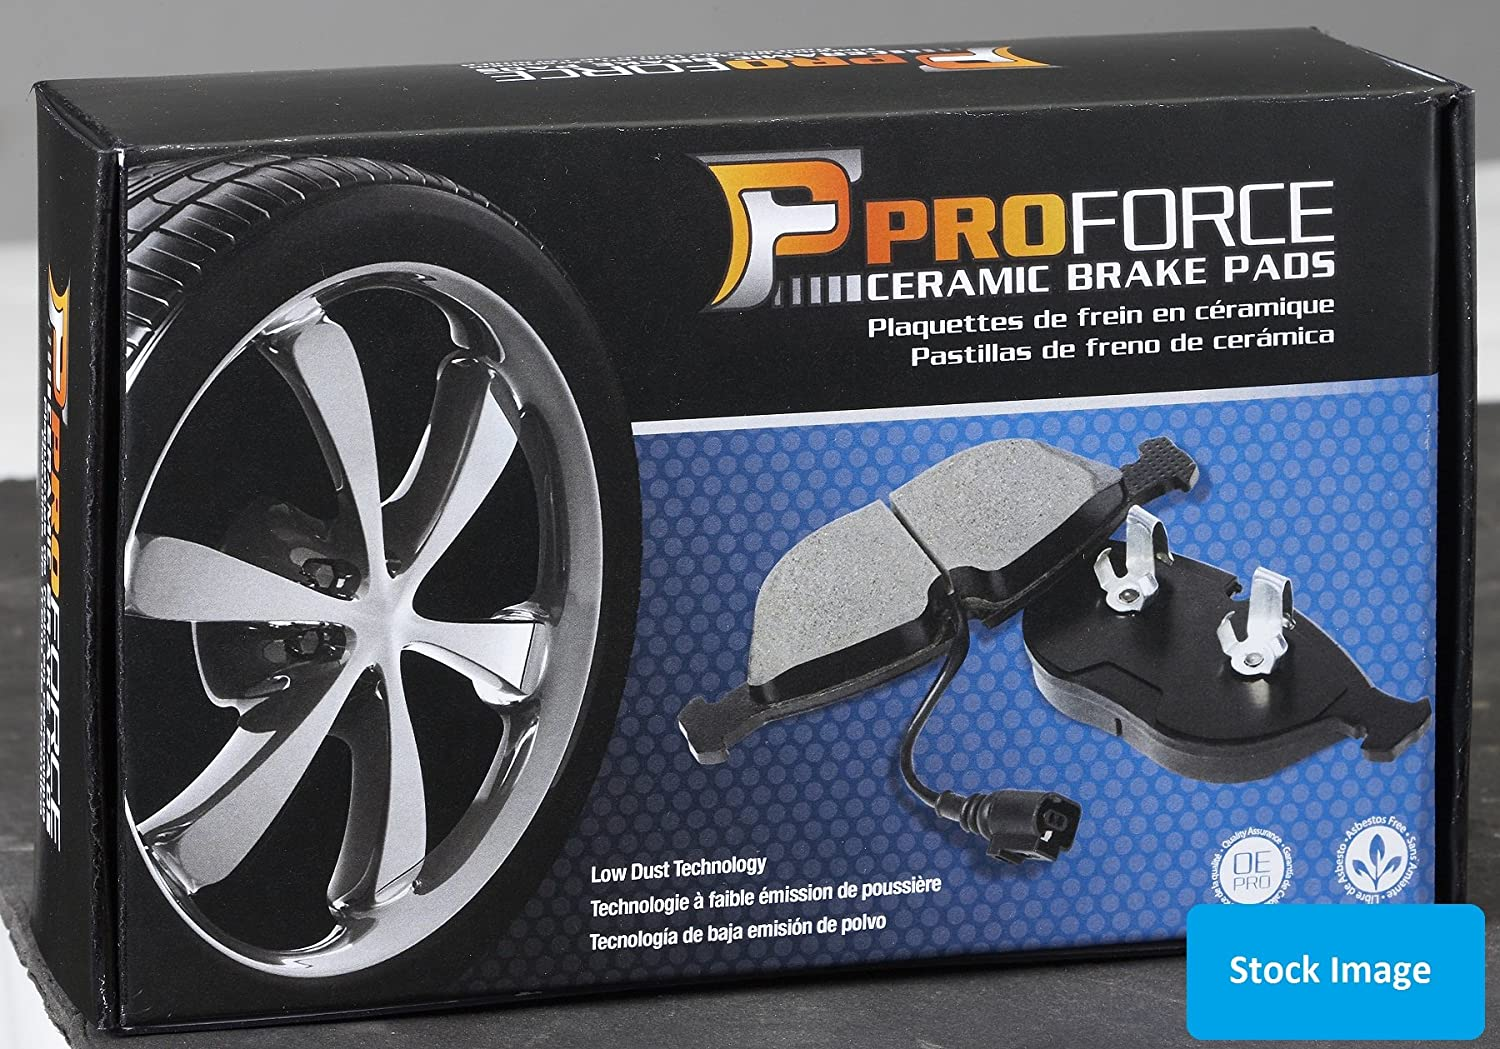 Ceramic Brake Pads with 2 Years Manufacturer Warranty Both Left and Right 2009 For Ford F-150 Rear Set